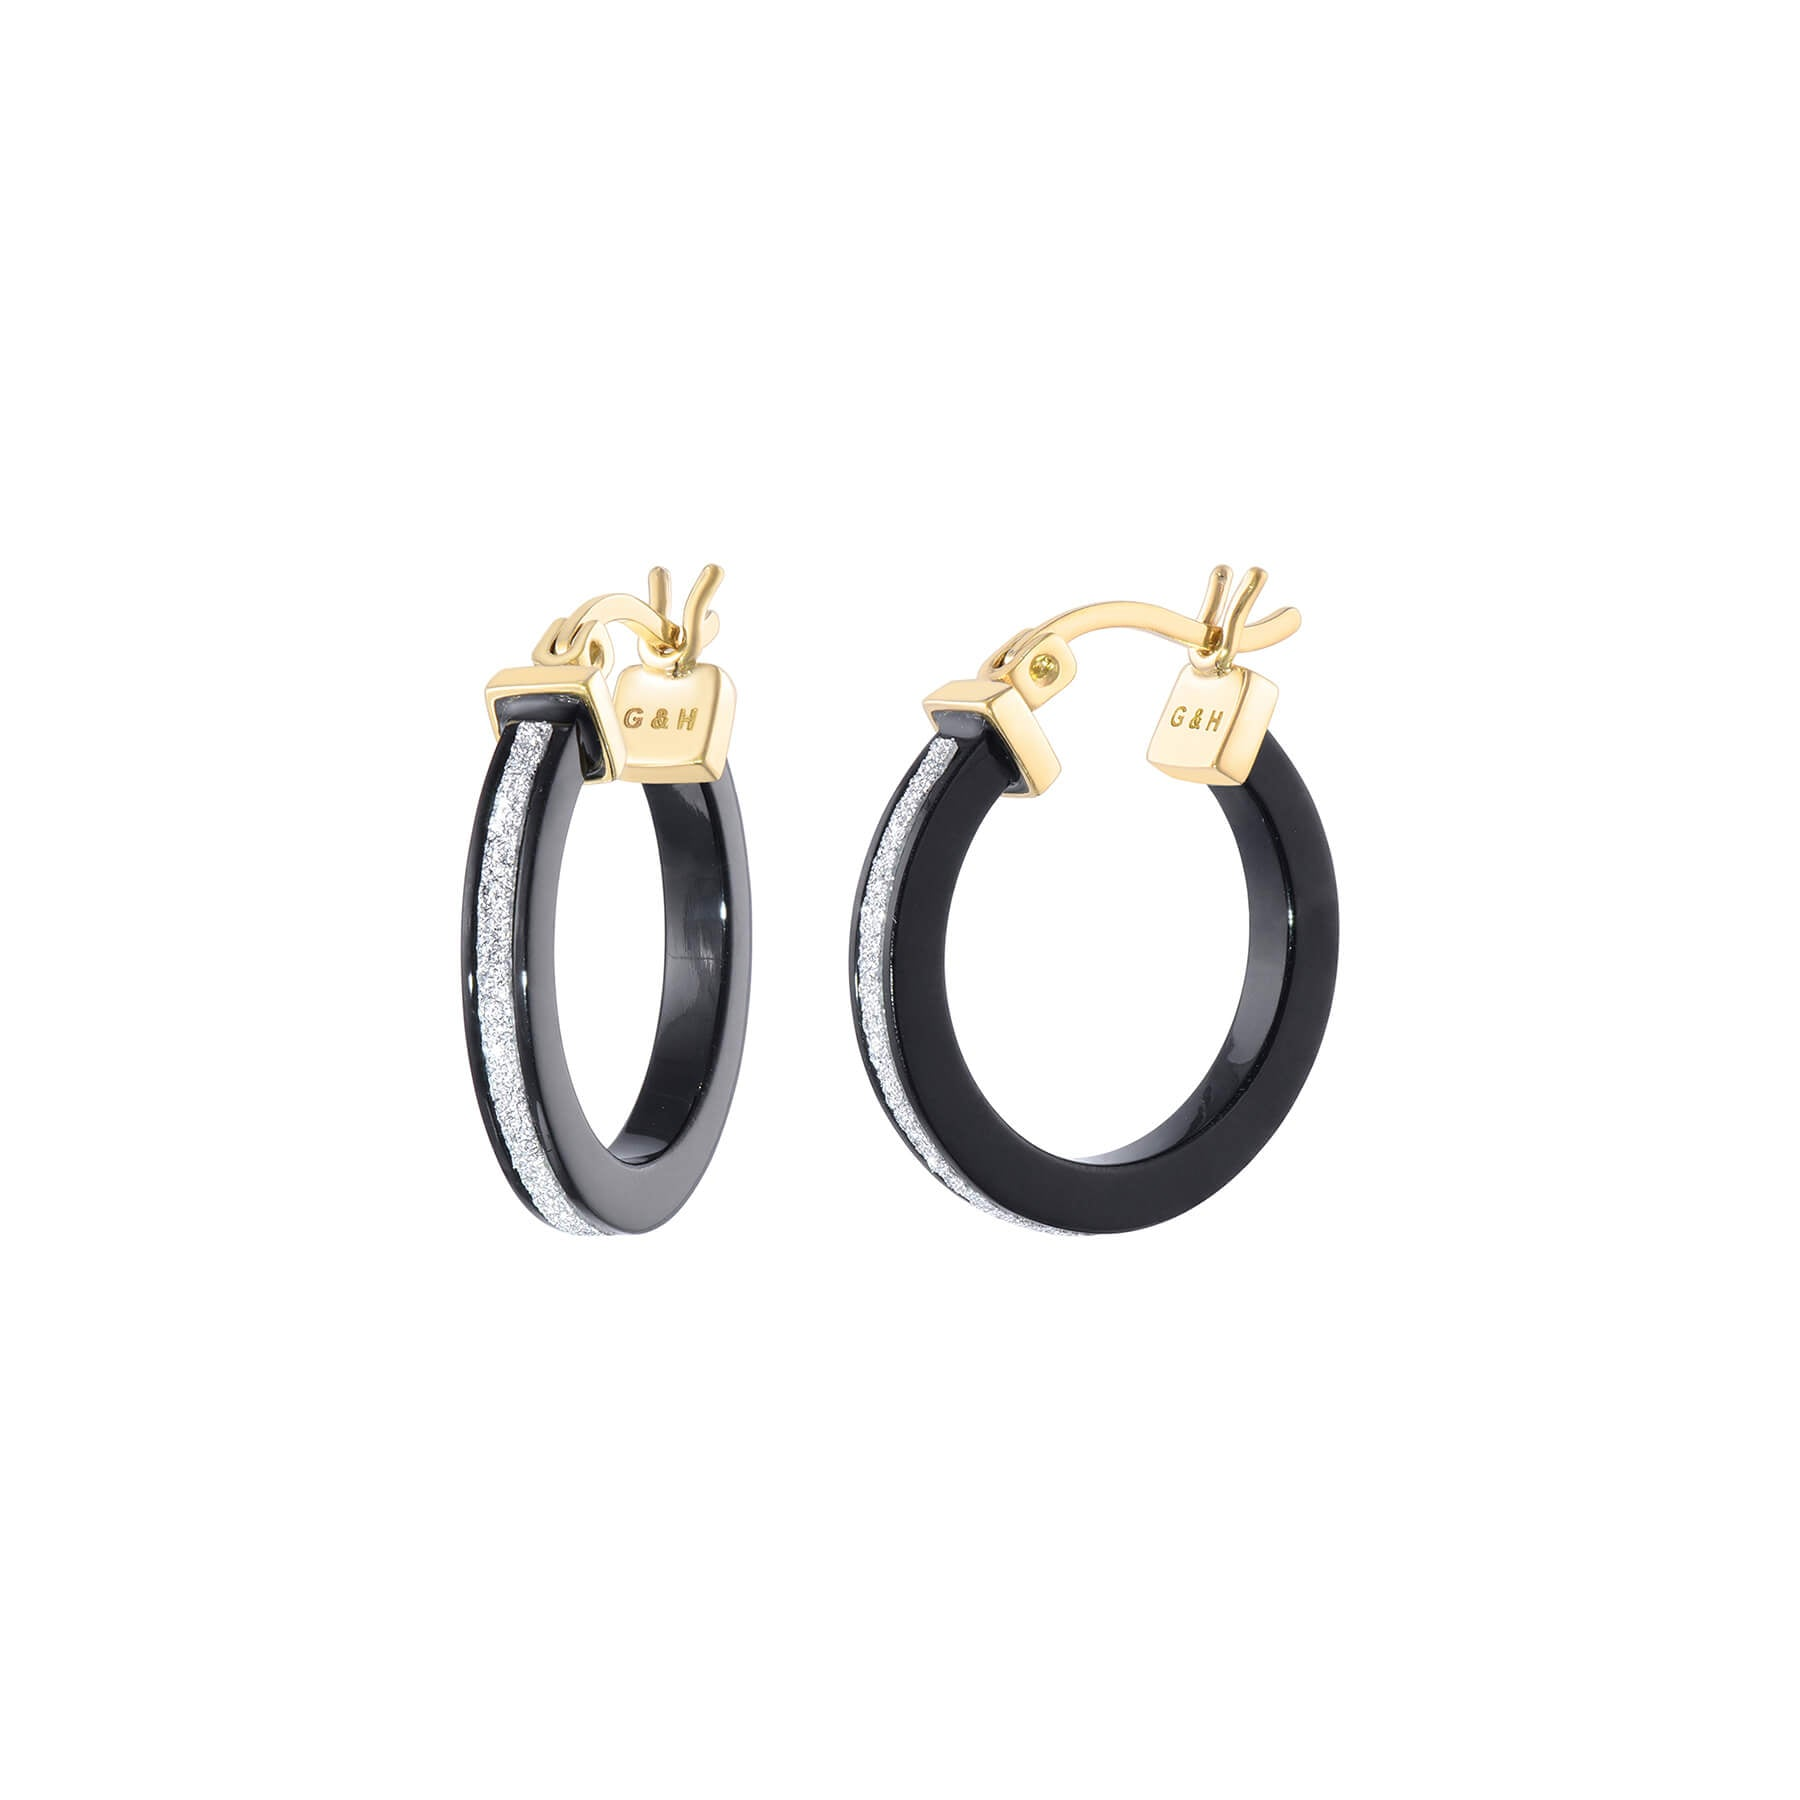 Thin Glitter Hoops - Black and Silver